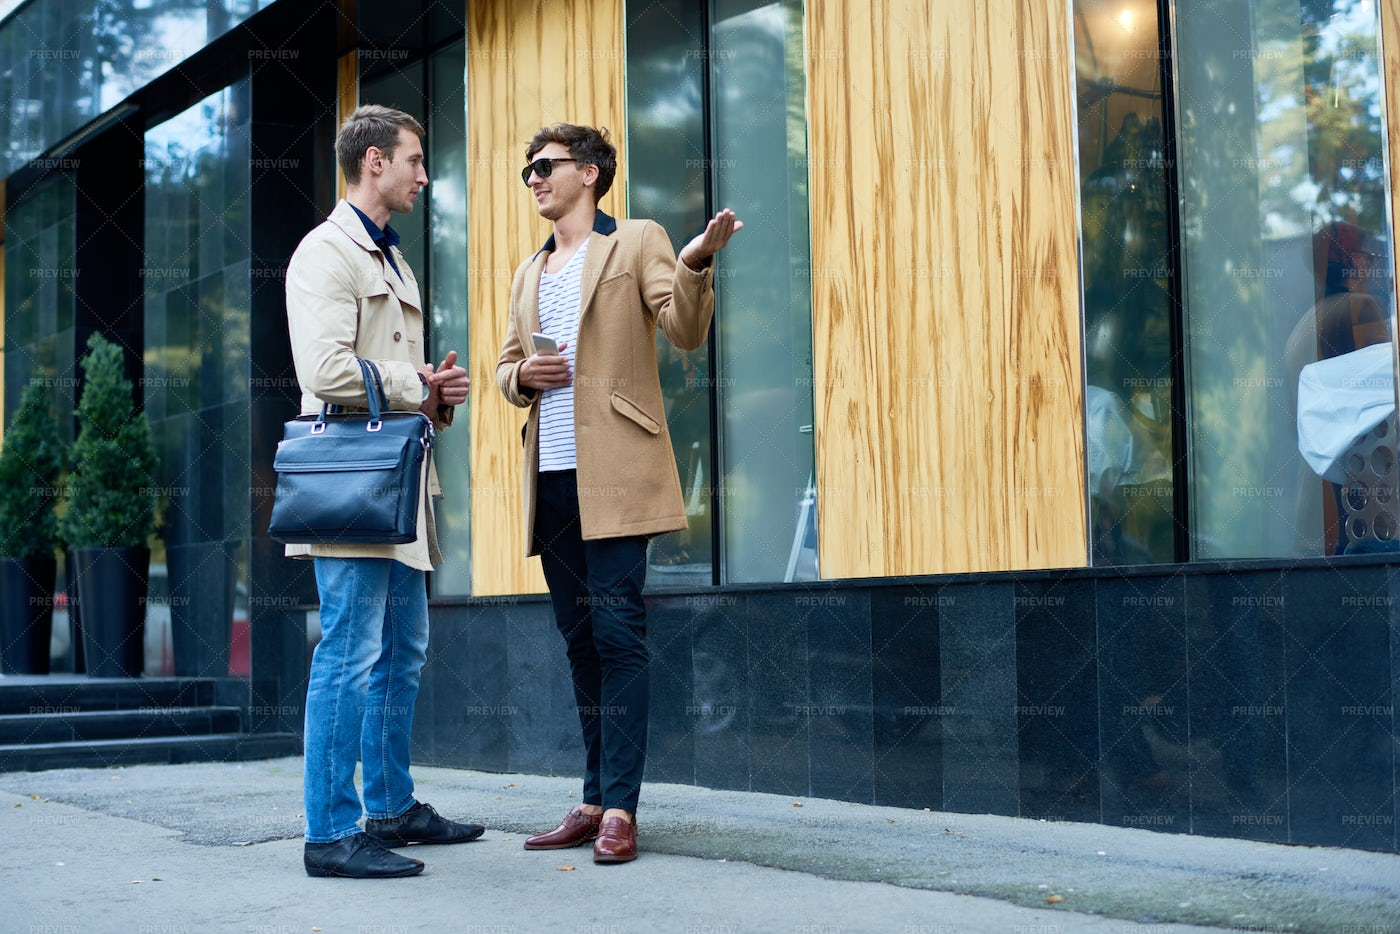 Two Stylish Men Chatting Outdoors: Stock Photos